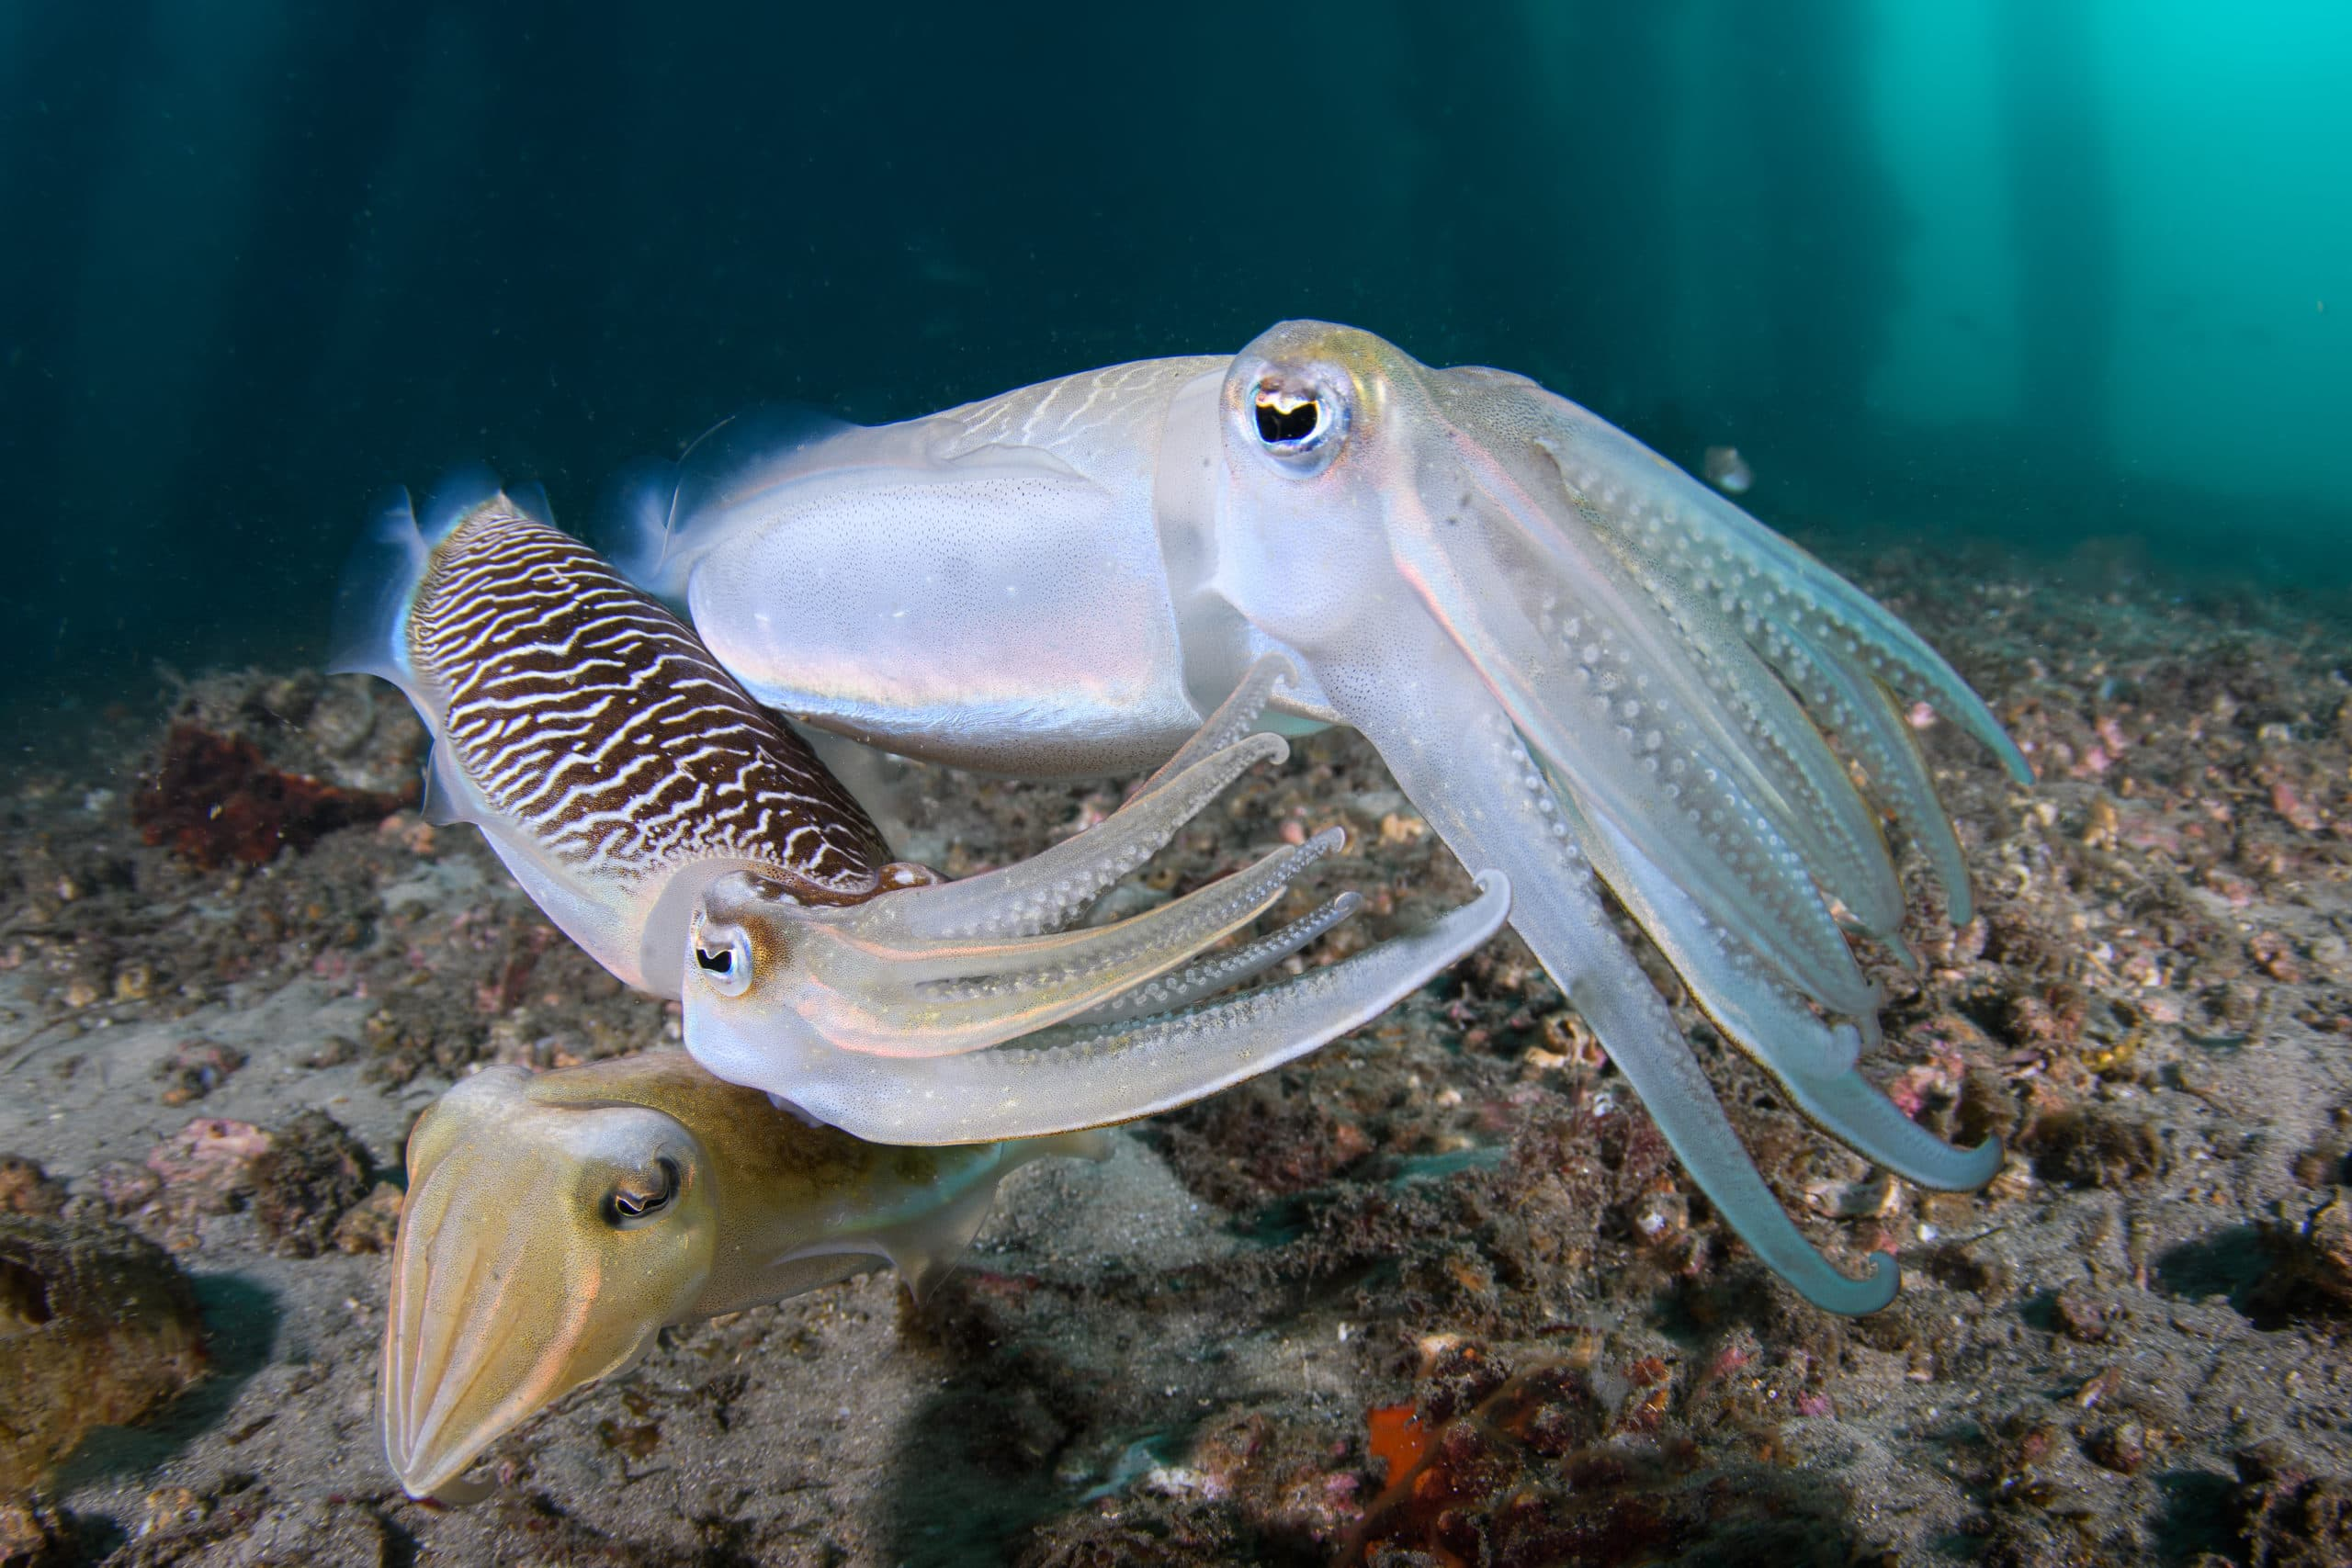 Two male cuttlefish competing for a female (bottom animal), on a mucky bottom, below Clifton Gardens' jetty (Sydney).